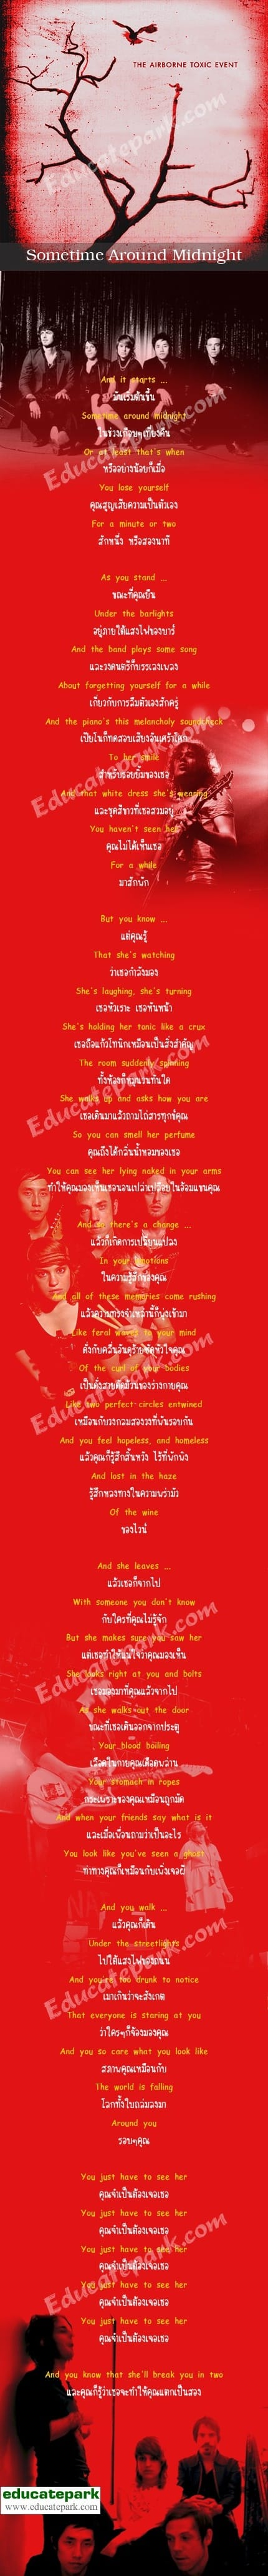 แปลเพลง Sometime Around Midnight - The Airborne Toxic Event